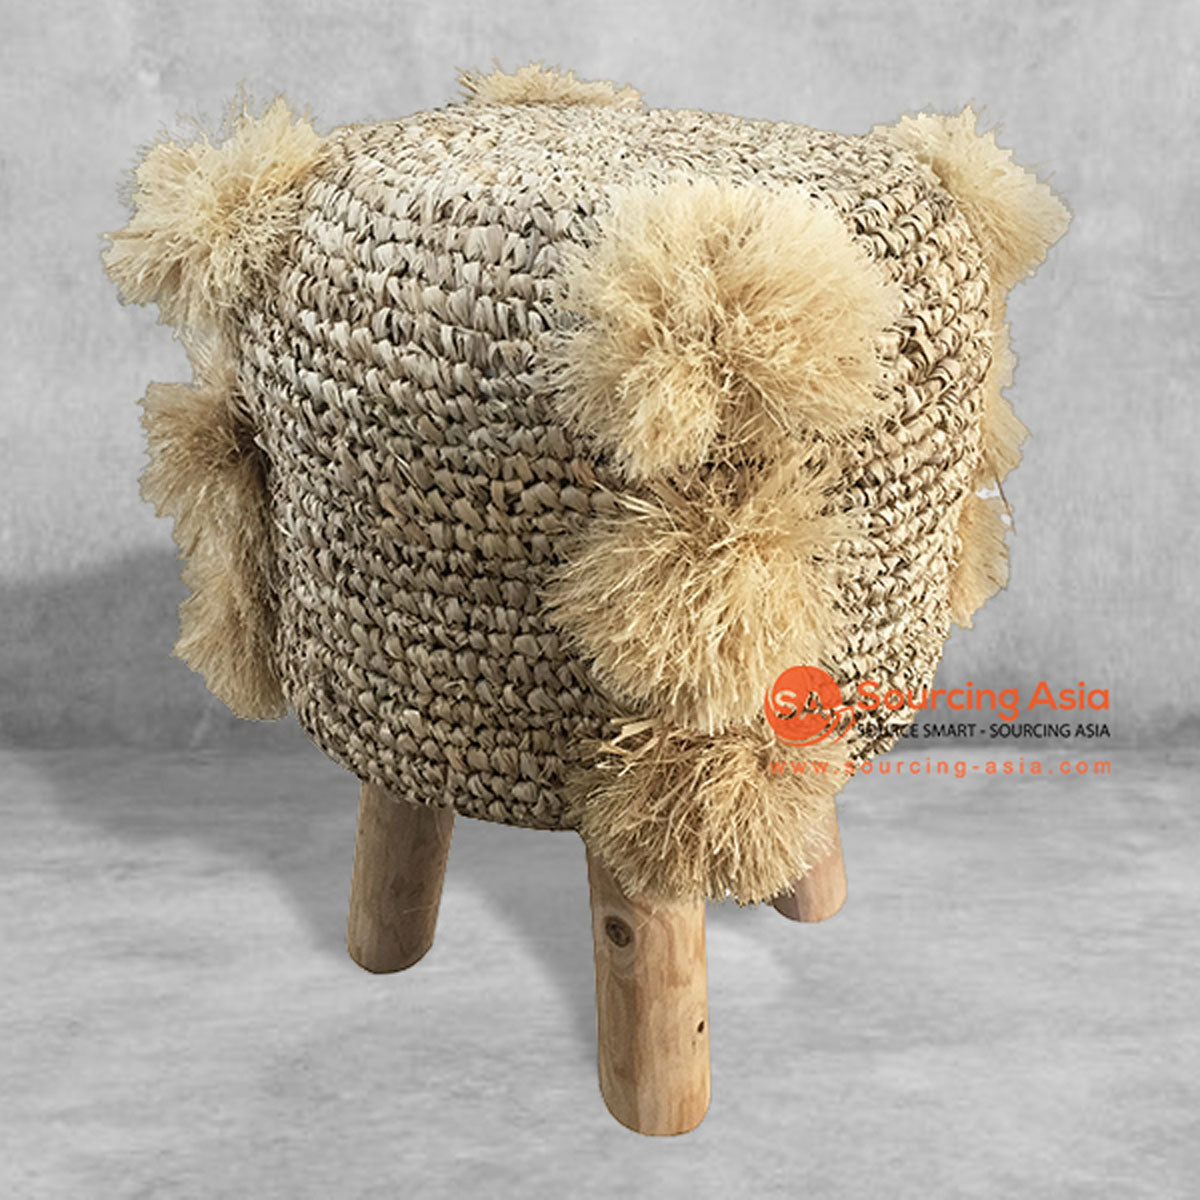 SHL142 NATURAL RAFFIA ROUND STOOL WITH POMS